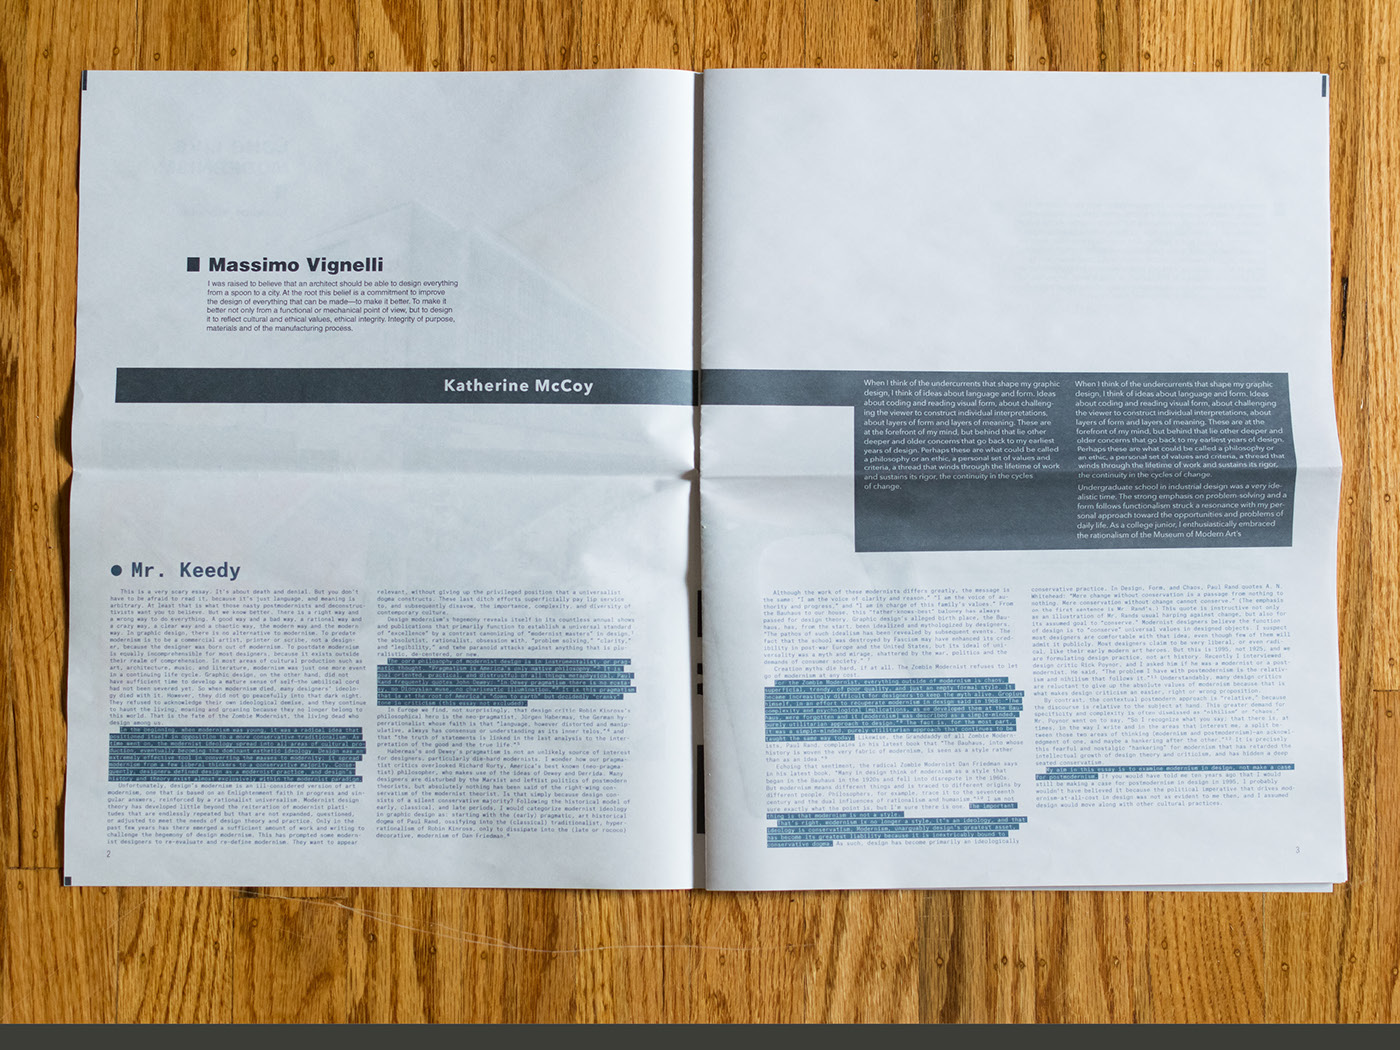 Best English Essays A Printed Publication Intended To Compare And Contrast Three Essays On  Typography By Massimo Vignelli Katherine Mccoy And Jeffery Keedy Examples Of A Thesis Statement In An Essay also Proposal Essay Example Modernismpostmodernism Essay Publication On Behance Research Papers Examples Essays